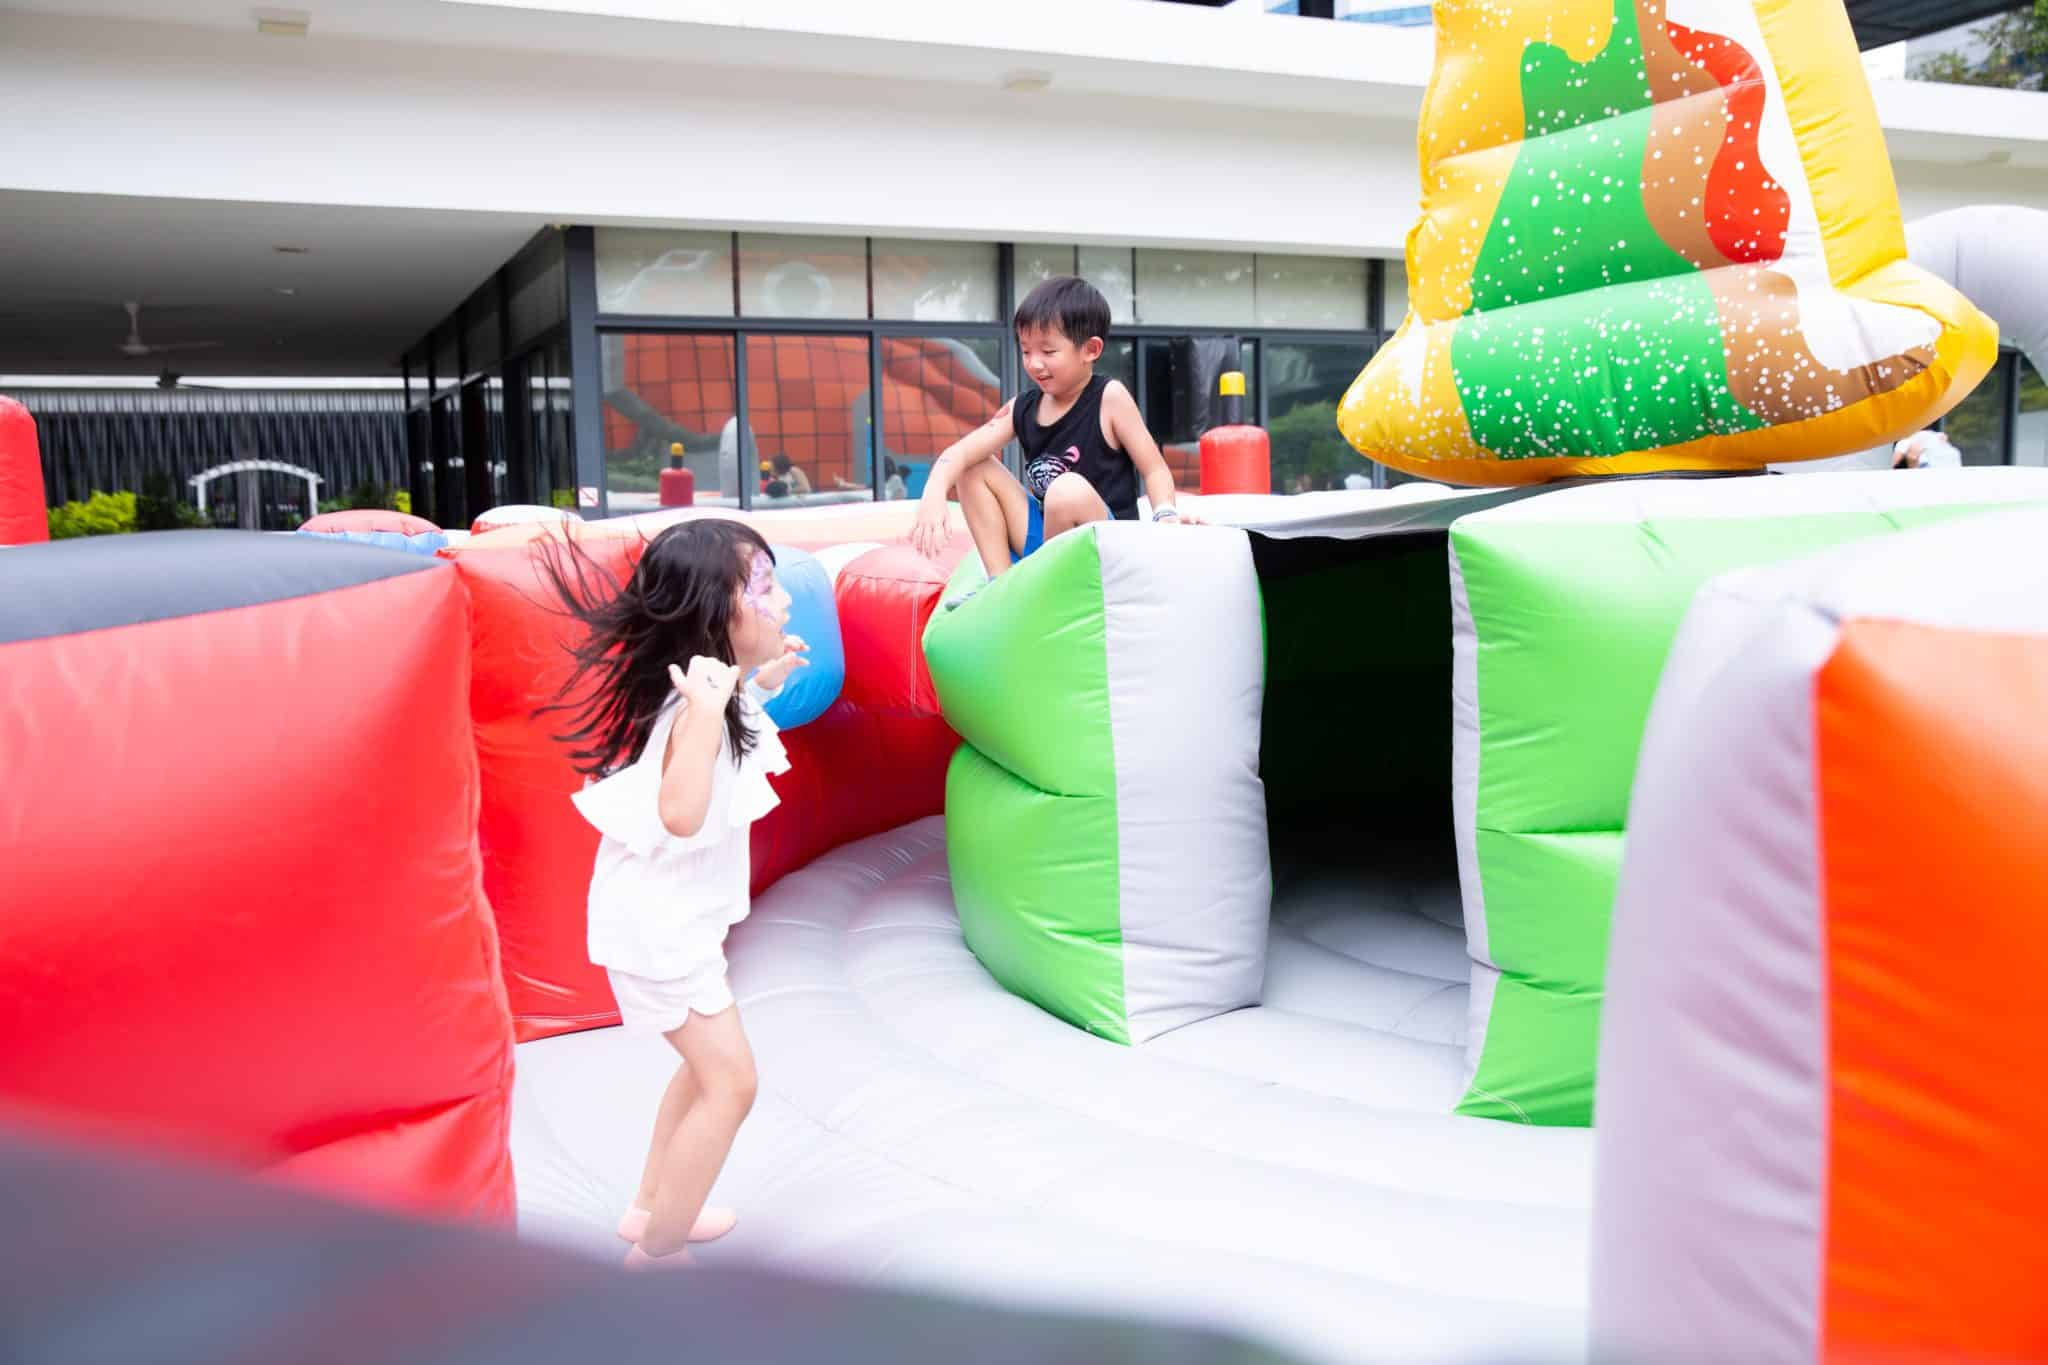 Giant Inflatable Bouncy Castle Rentals Singapore 4